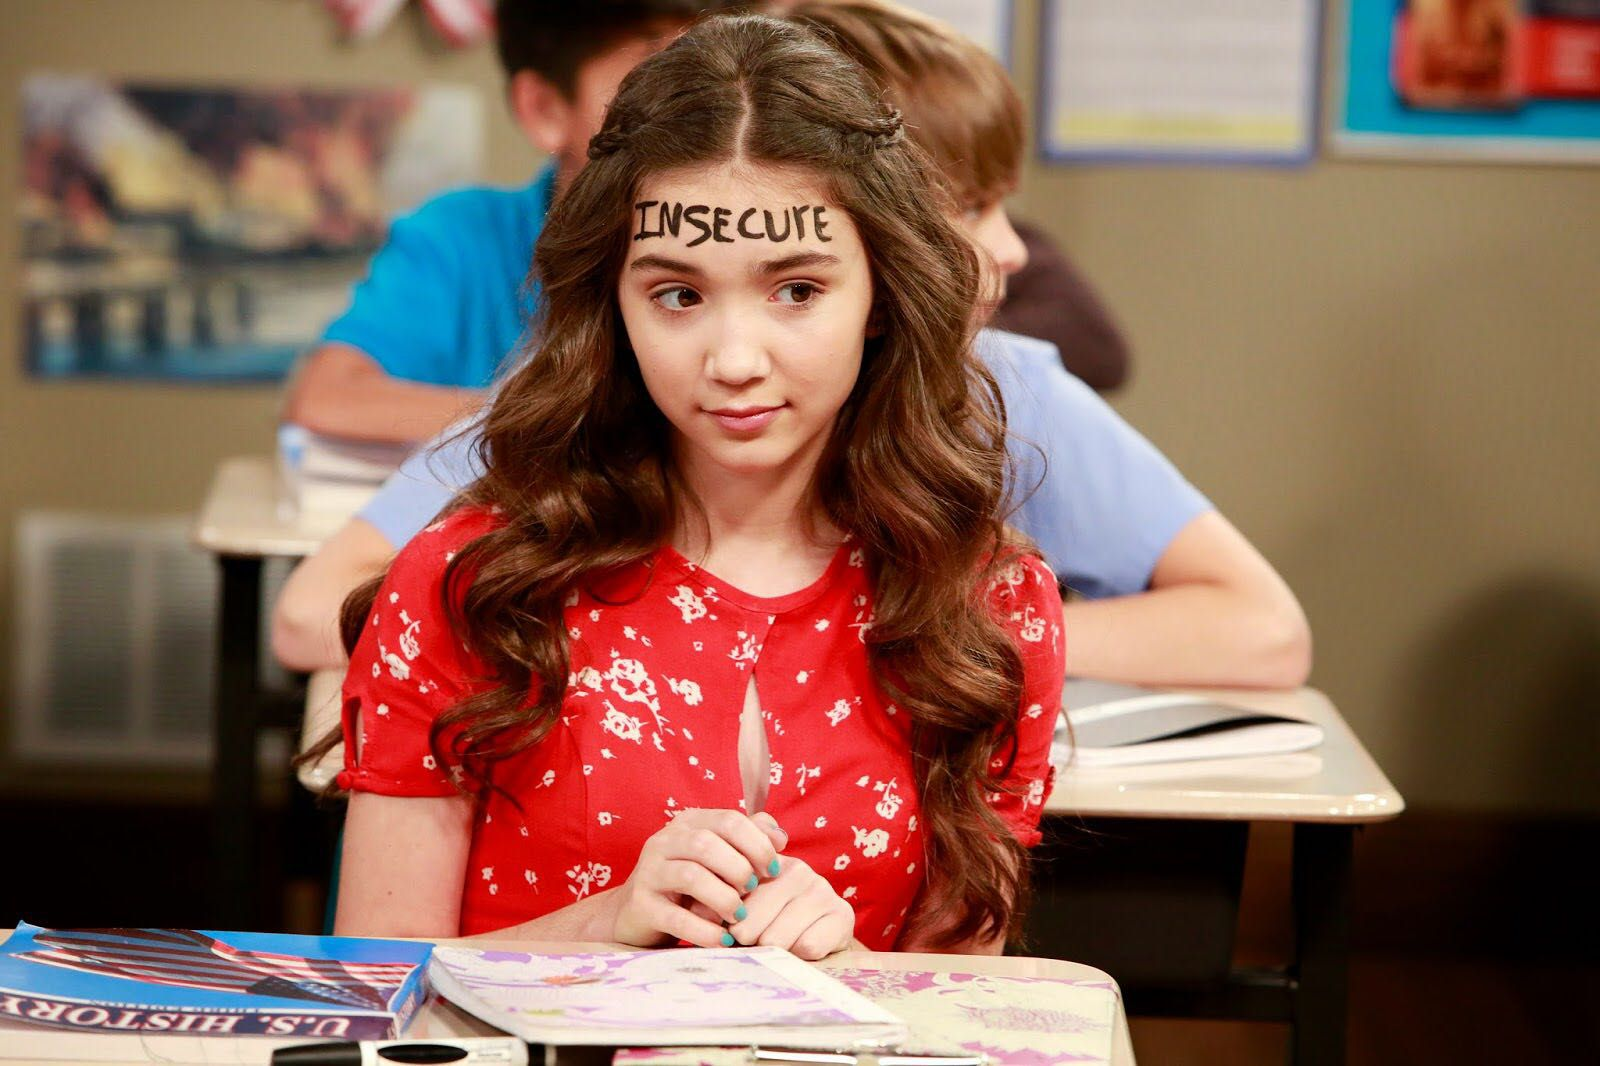 girl meets world fanfiction riley pregnant Girl meets pregnant from the story girl meets world by lgbtbrina girl meets alone chapter 29: girl meets riley and farkles turn girl meets world fanfiction.